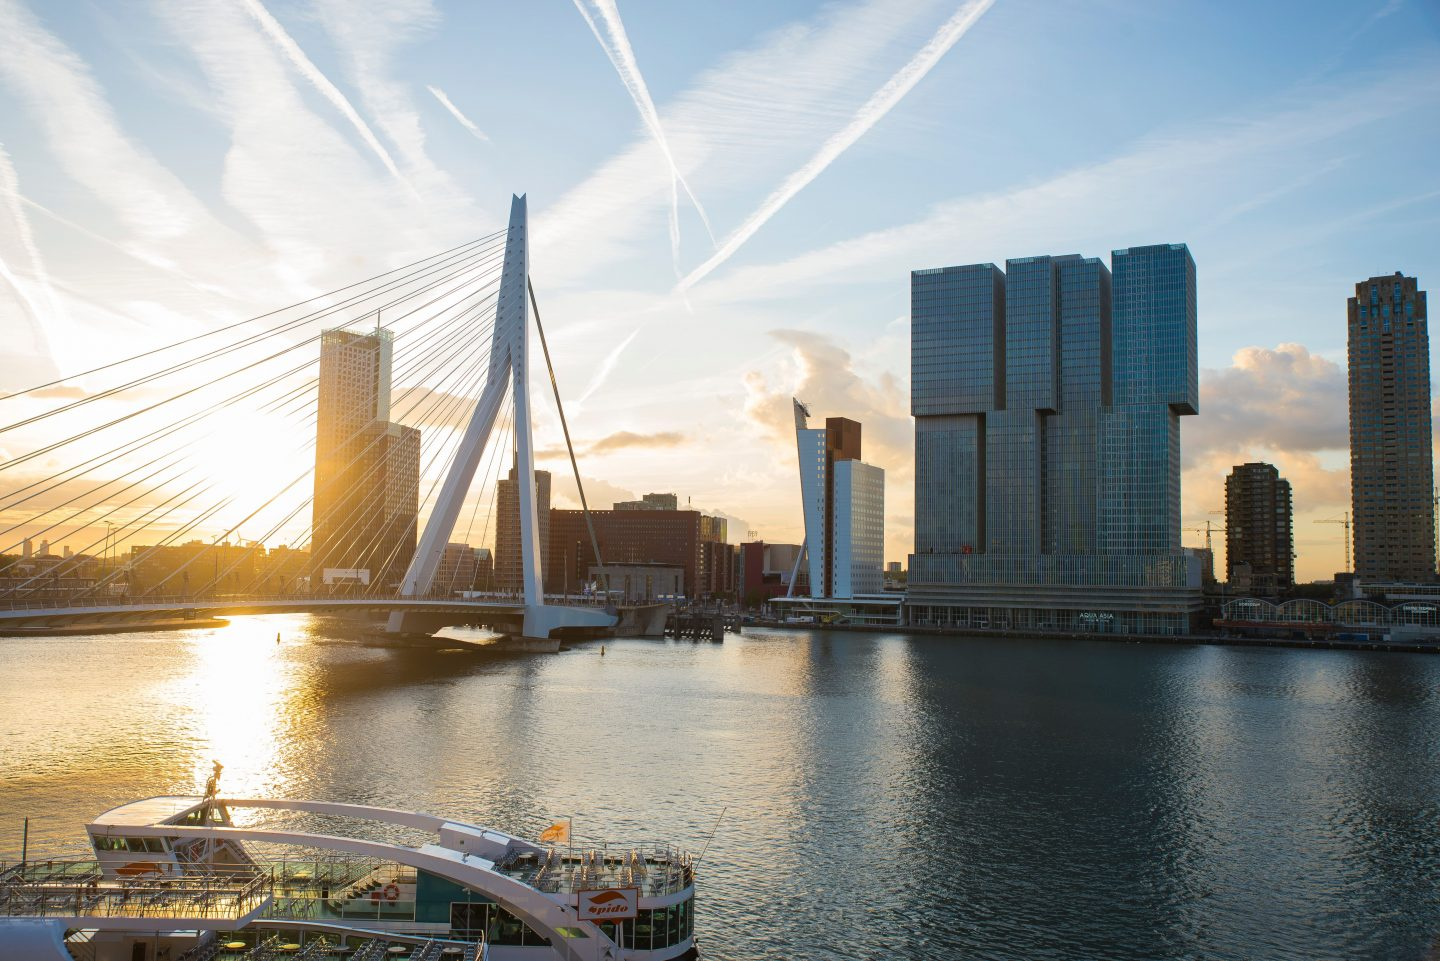 The Erasmus Bridge A must see when you are one day in Rotterdam